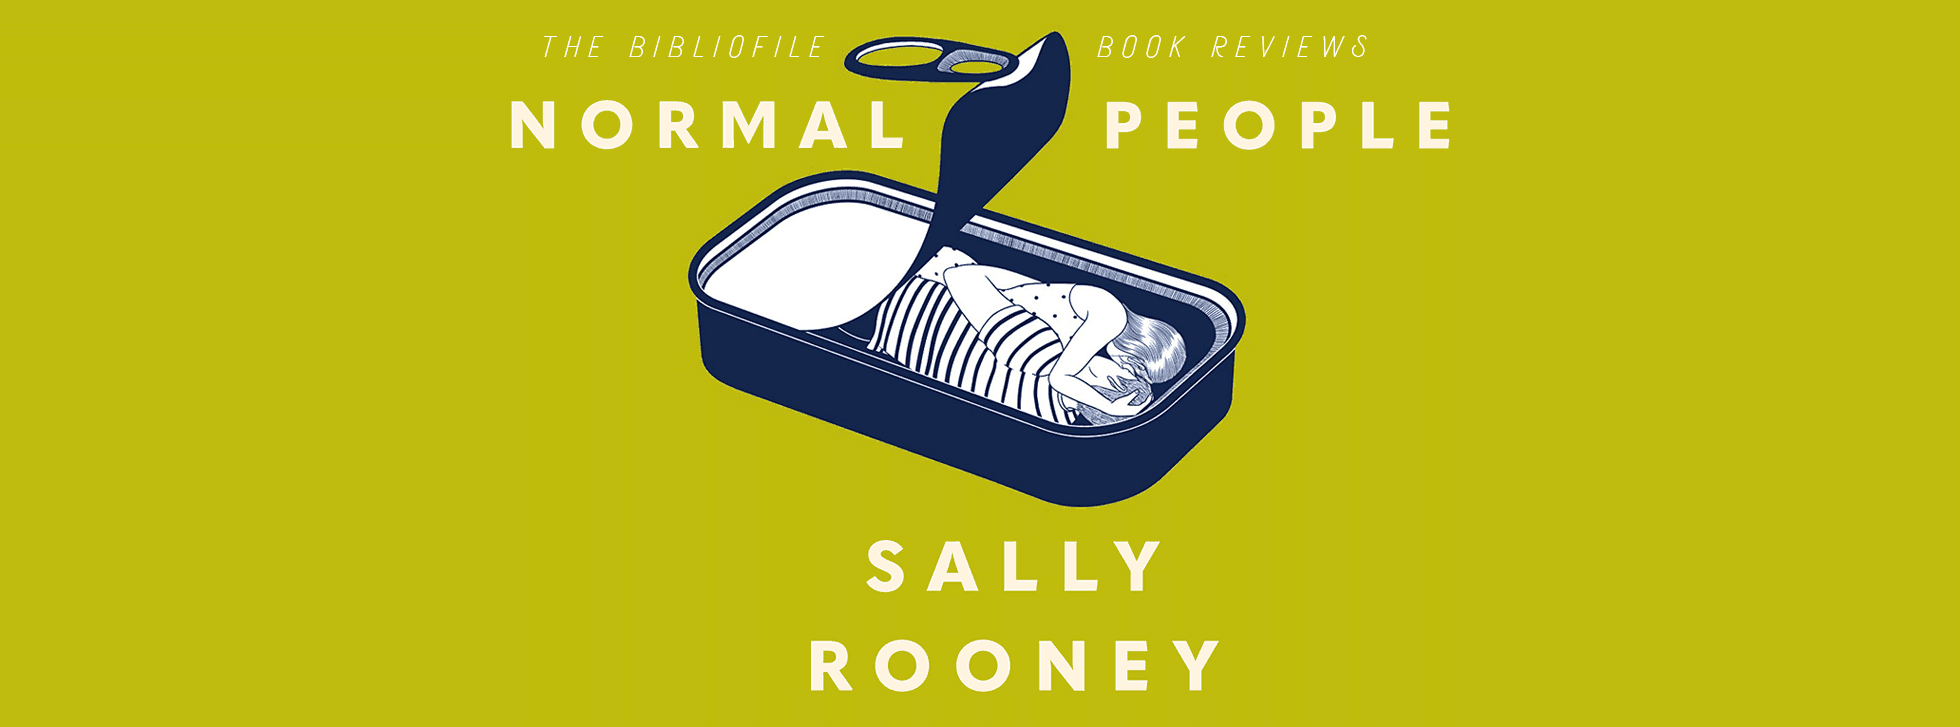 Normal People Sally Rooney Review